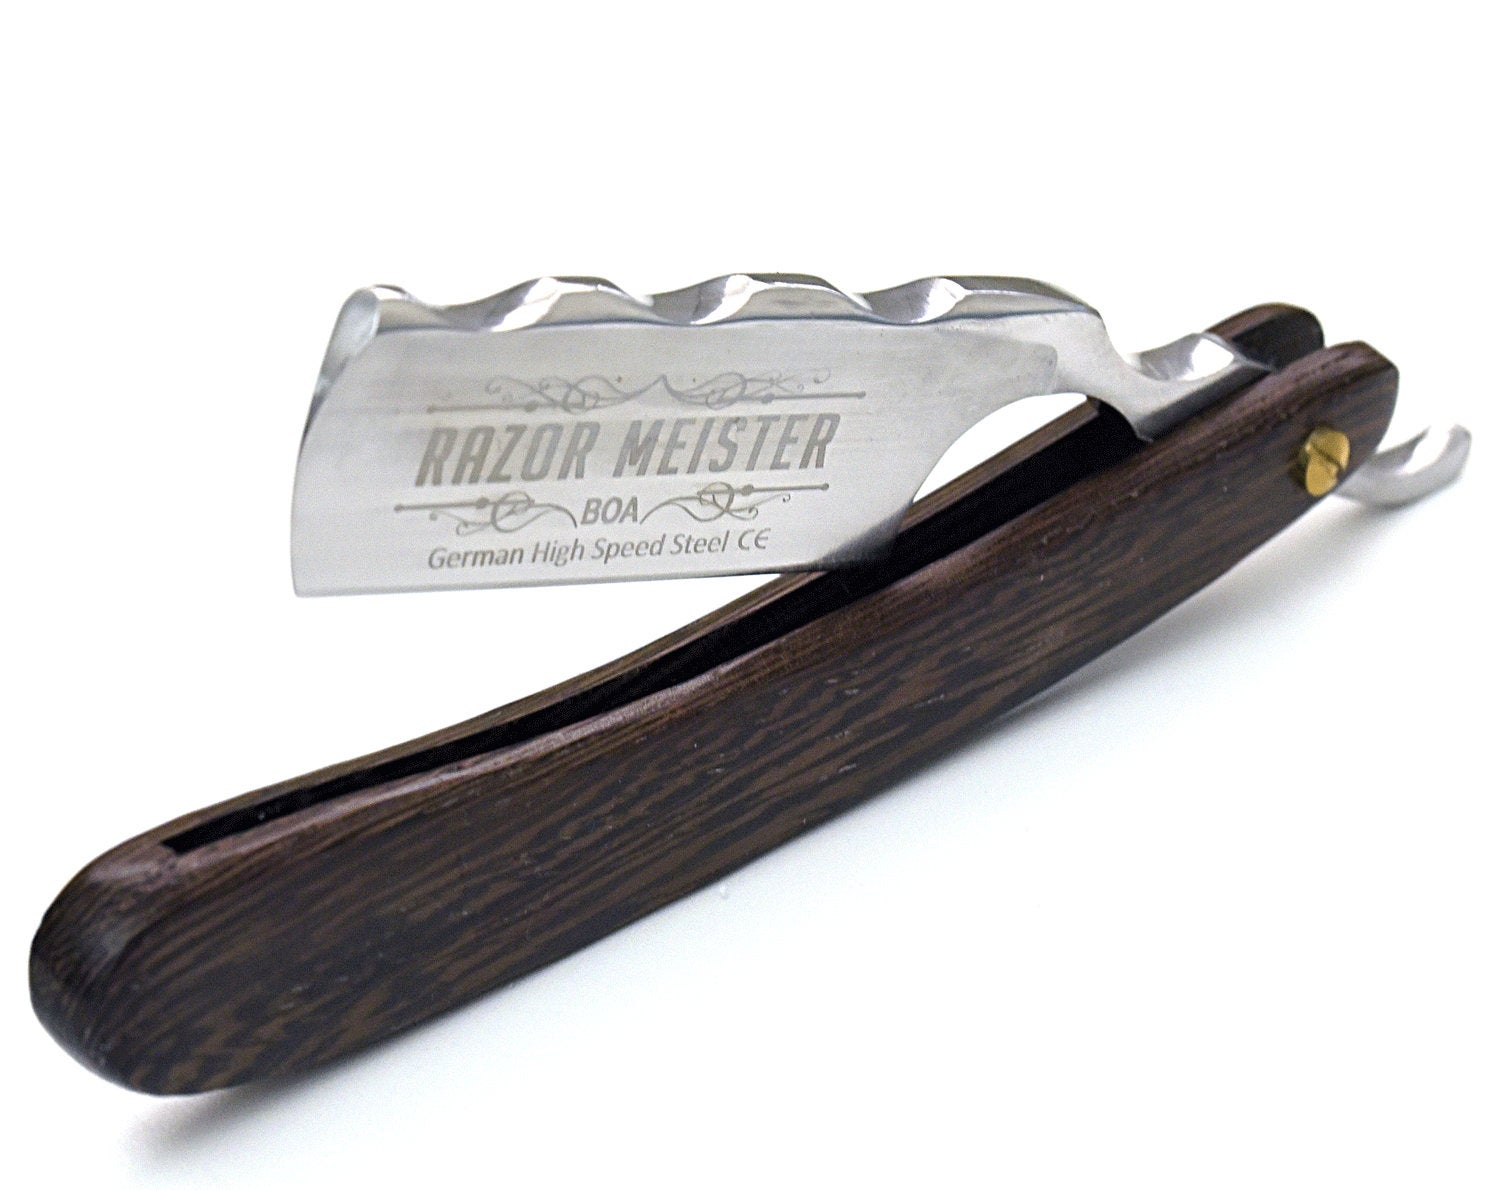 STRAIGHT RAZOR by Razor Meister, BOA, Wenge wood scales, shave ready, custom razor, personalized, hand stitched leather sheath new custom - SHOKUNIN USA